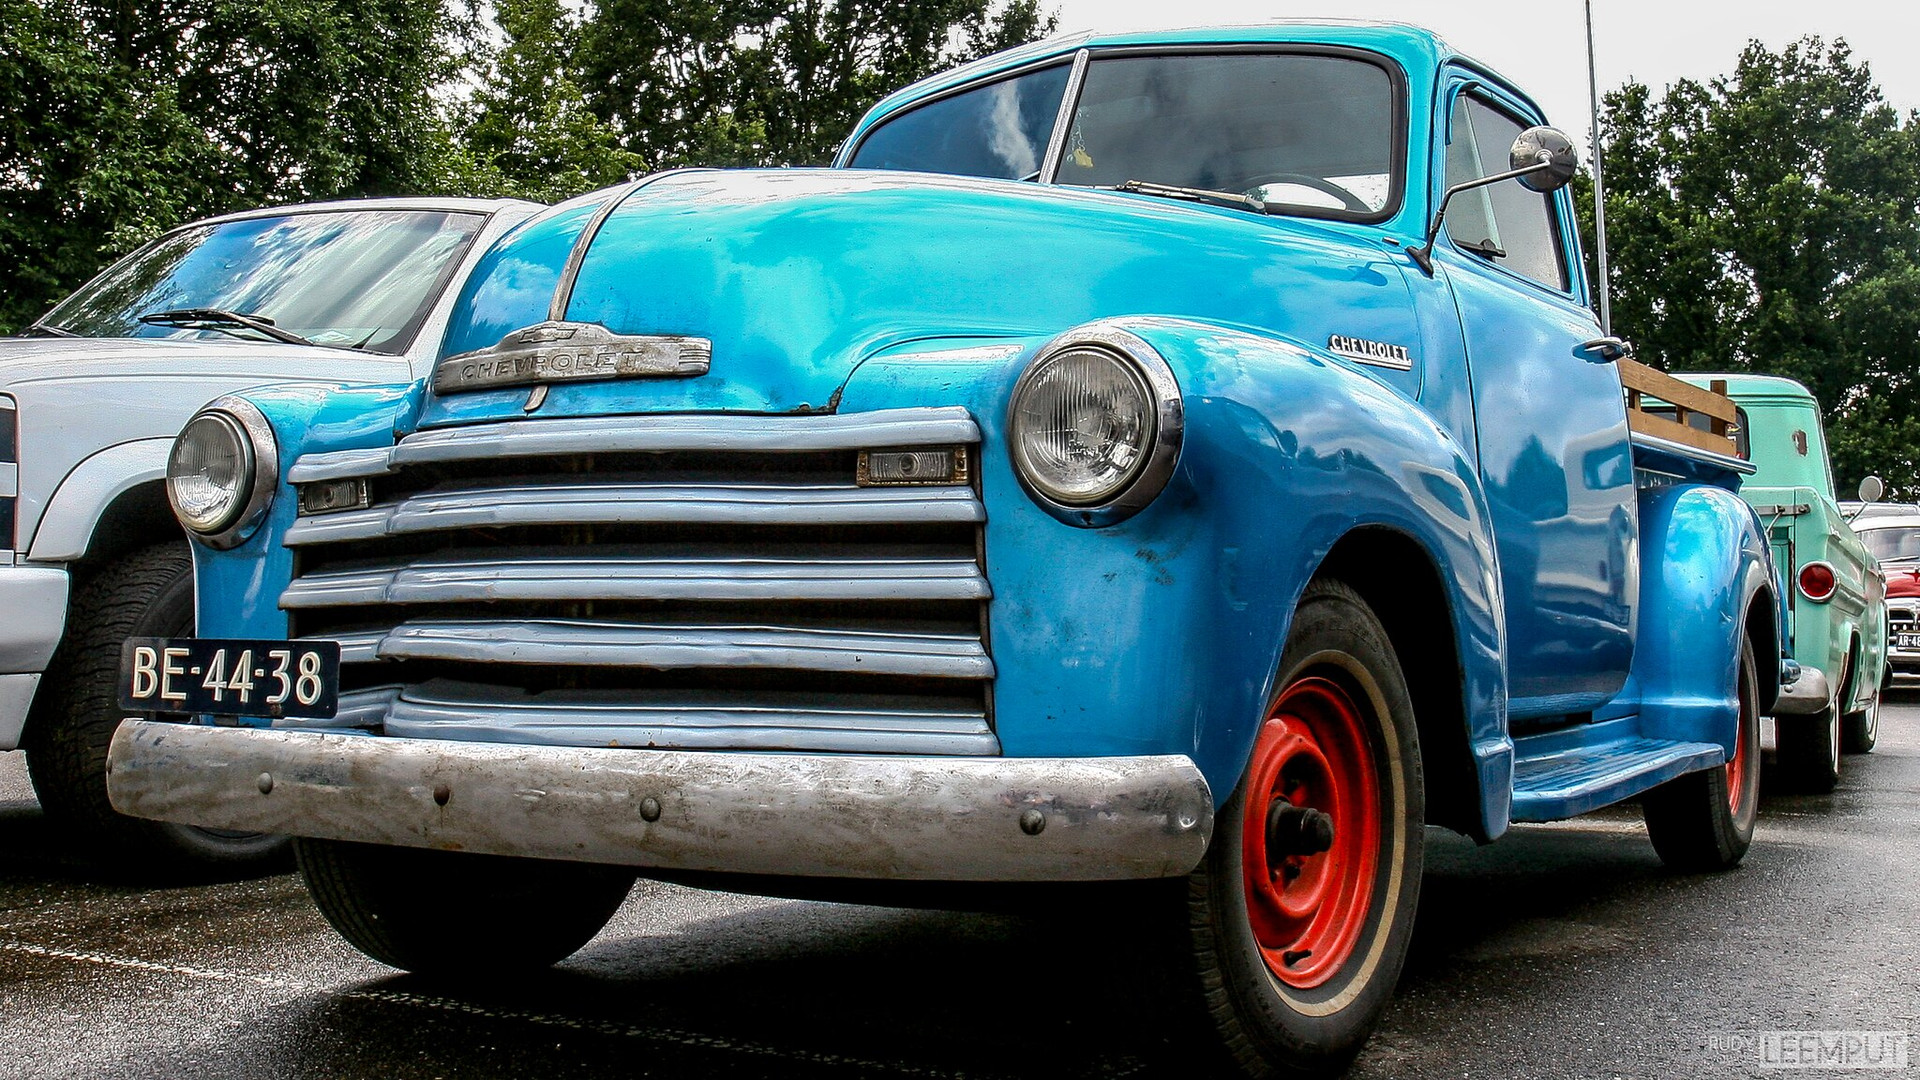 1952 | BE-44-38 | Chevrolet Pick Up